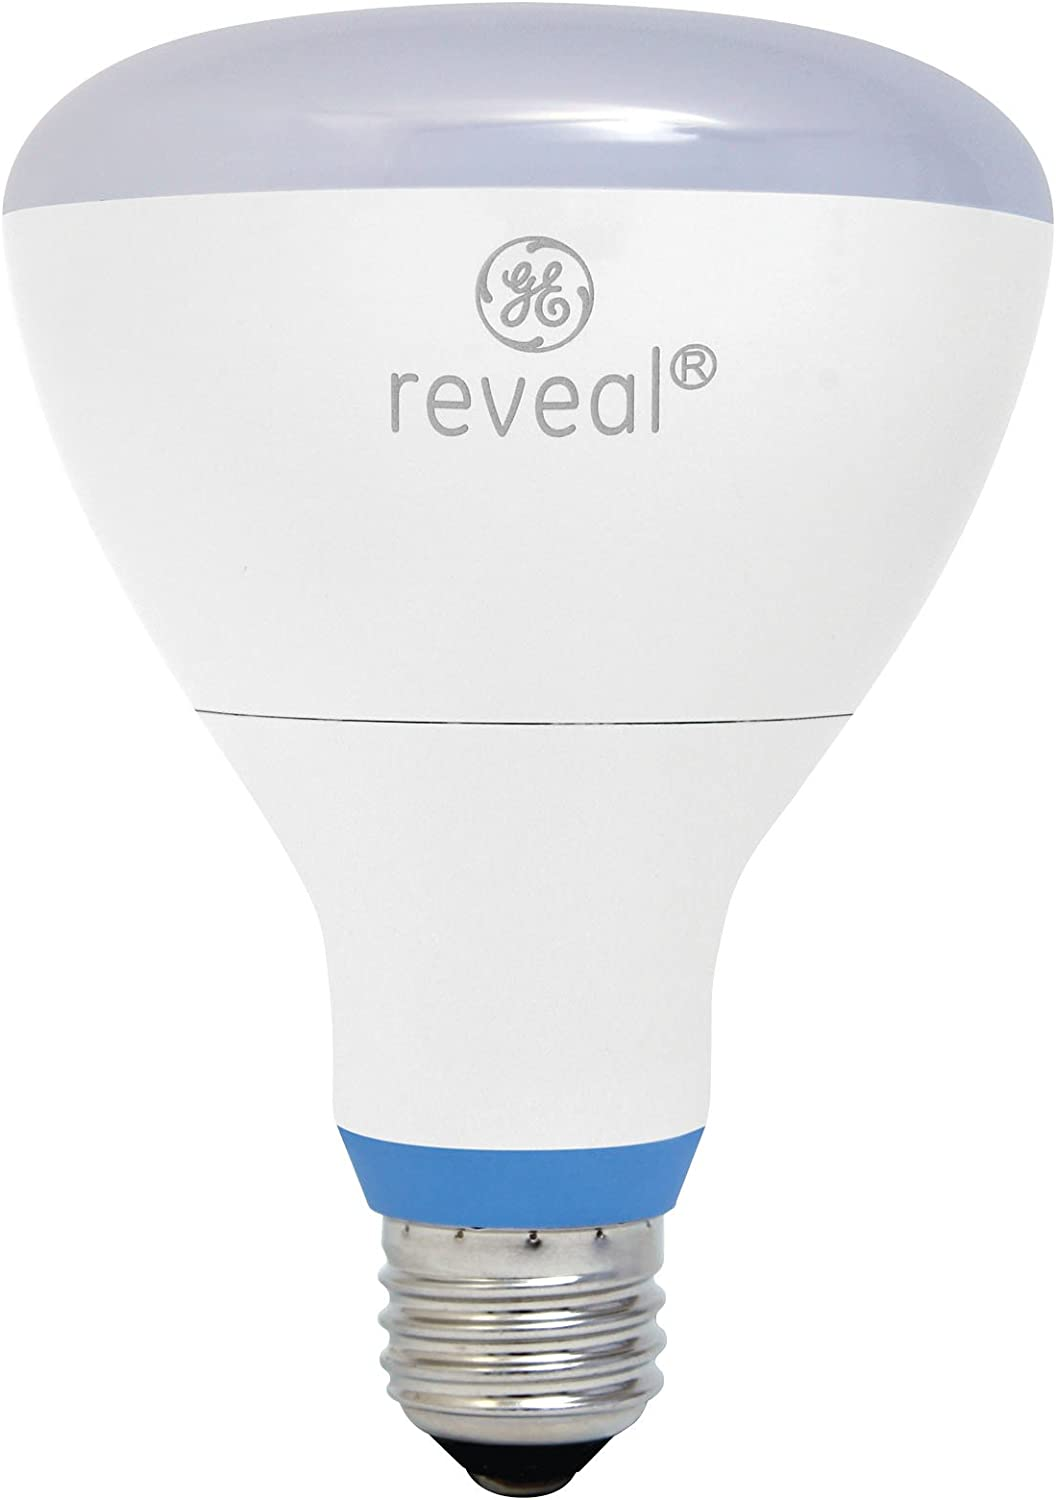 GE Lighting 92470 Reveal LED 10-Watt (65-Watt replacement), 650-Lumen R30 Bulb with Medium Base, 1-Pack